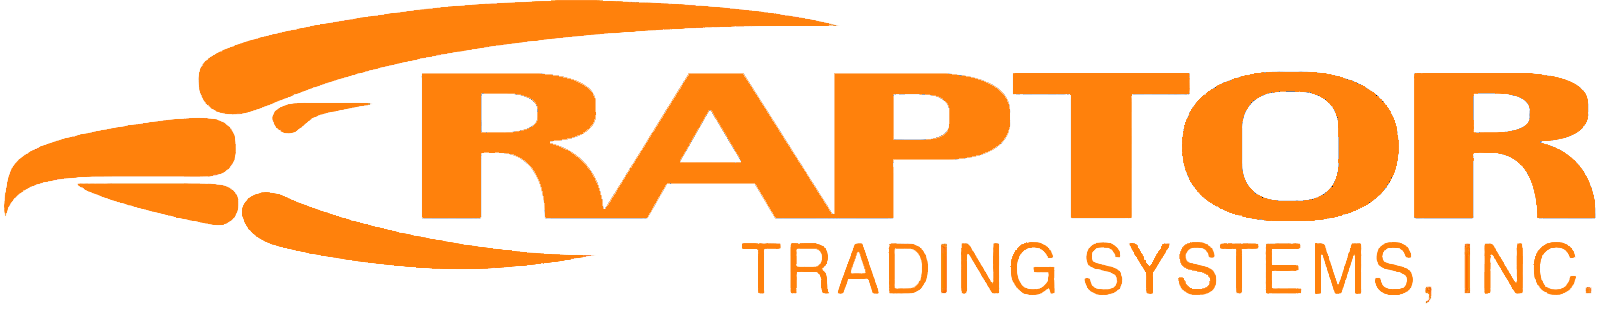 Raptor Trading Systems, Inc.